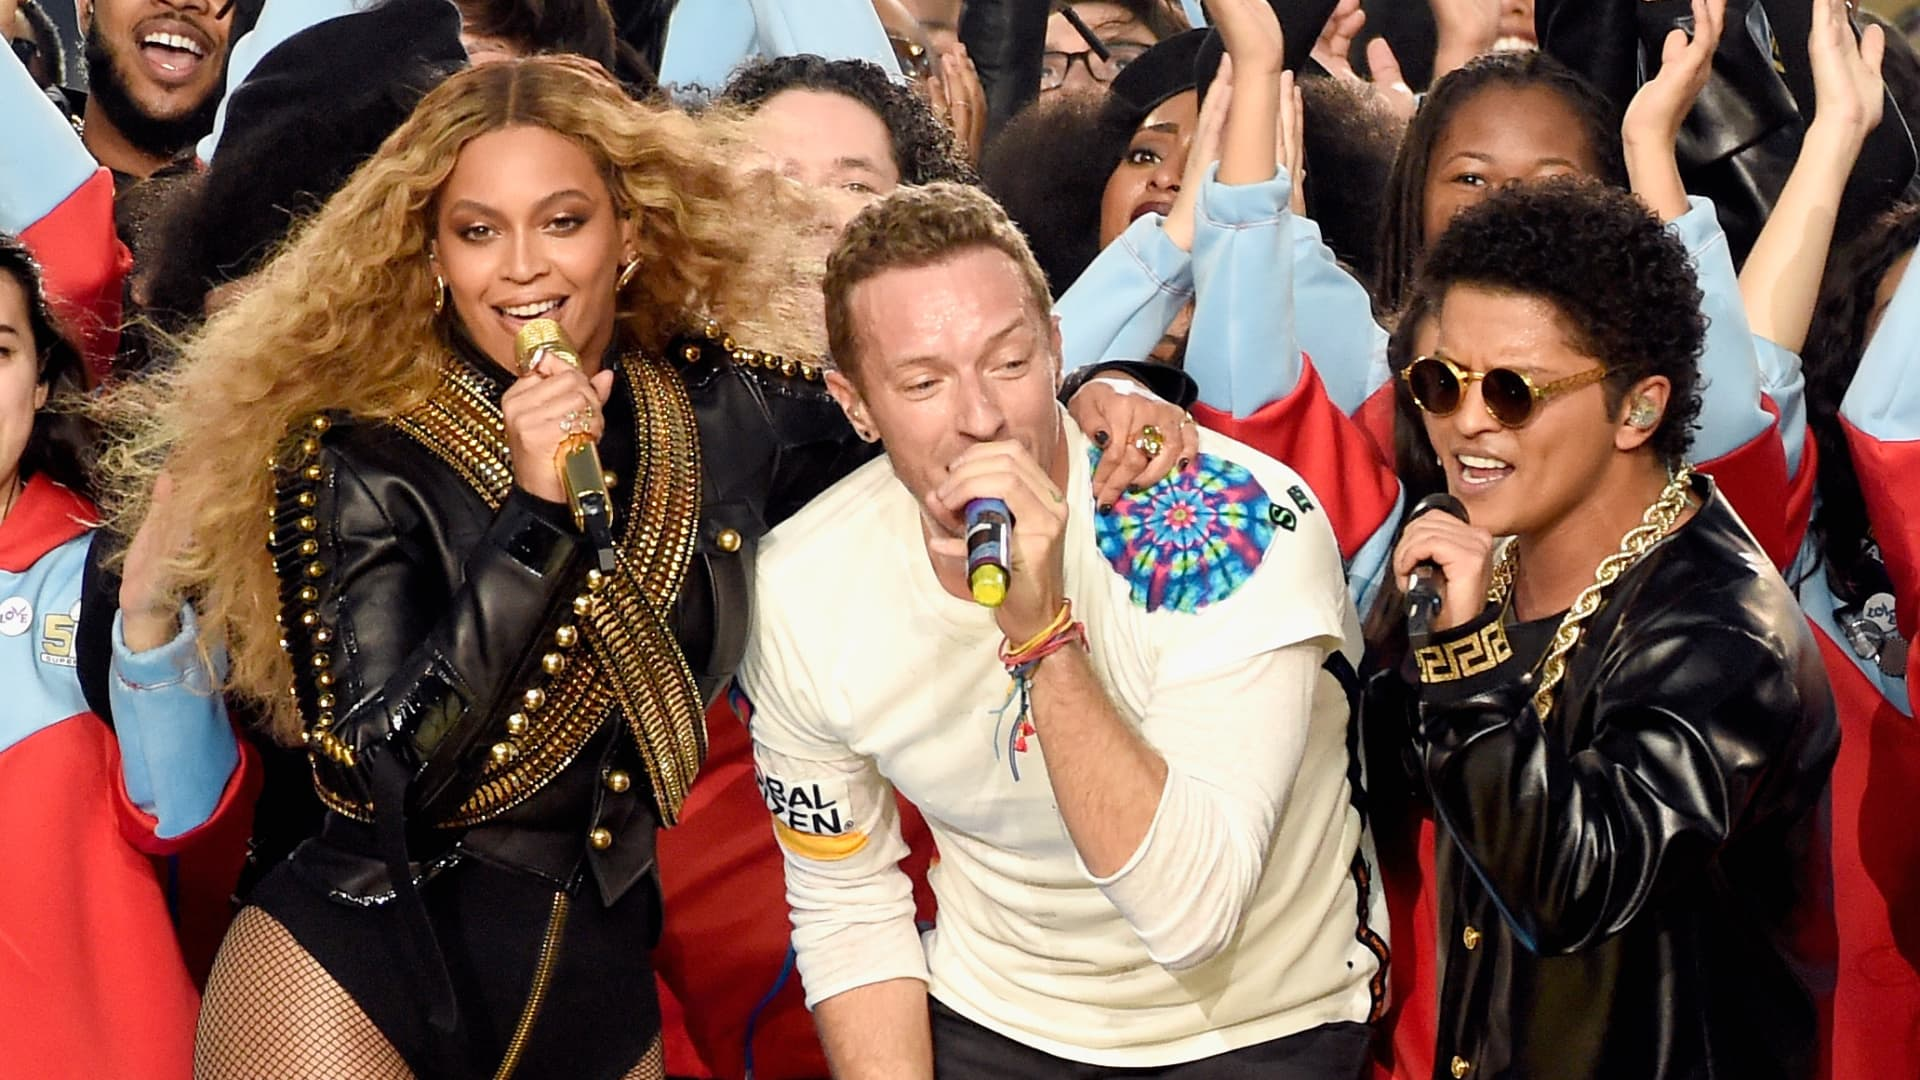 (L-R) Beyonce, Chris Martin of Coldplay and Bruno Mars perform onstage during the Pepsi Super Bowl 50 Halftime Show at Levi's Stadium on February 7, 2016 in Santa Clara, California.(Photo by Kevin Mazur/WireImage)